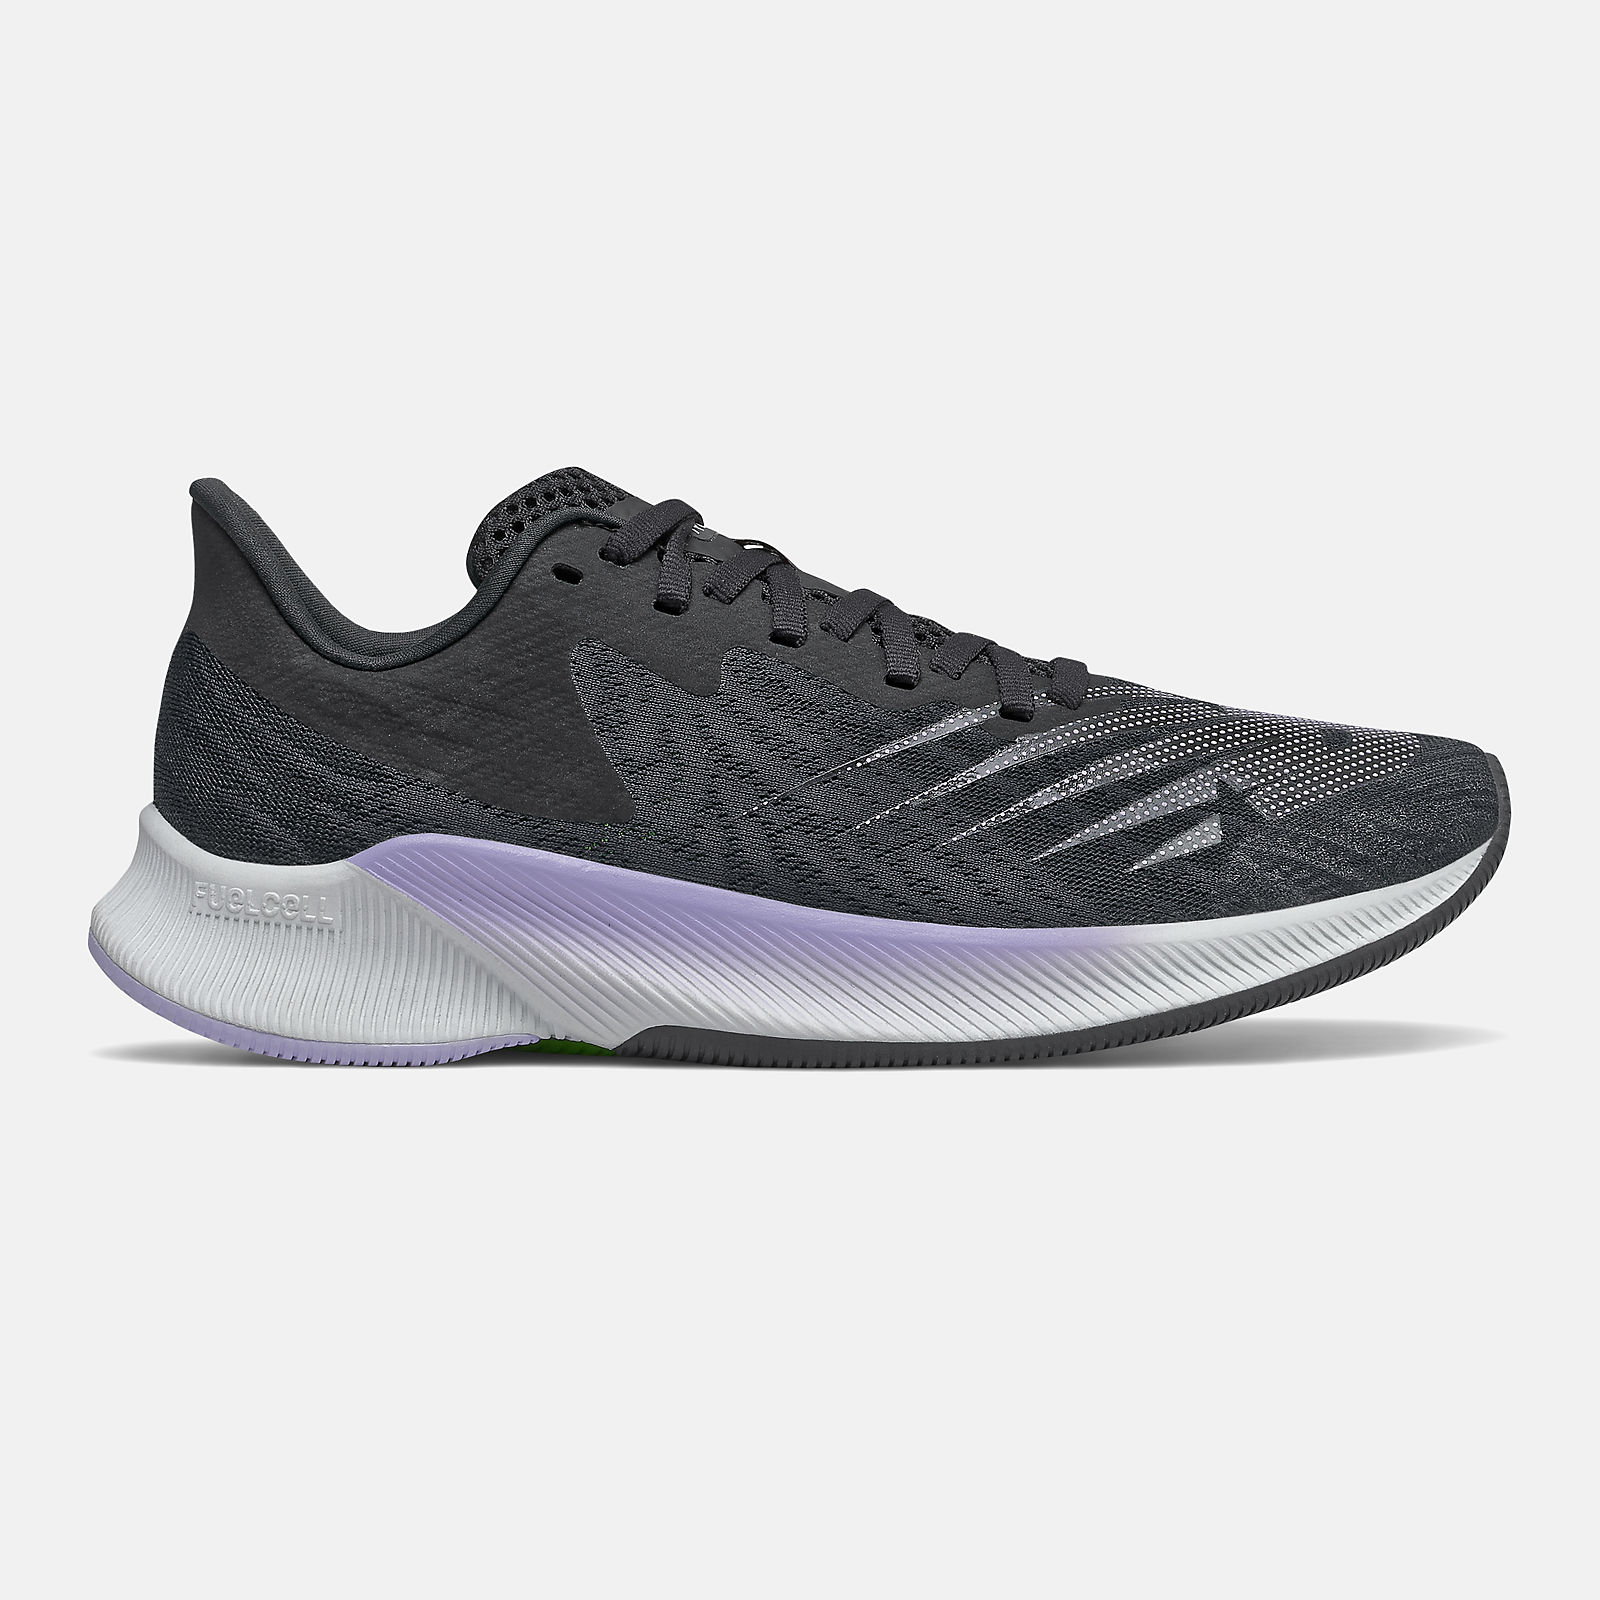 FuelCell Prism - New Balance